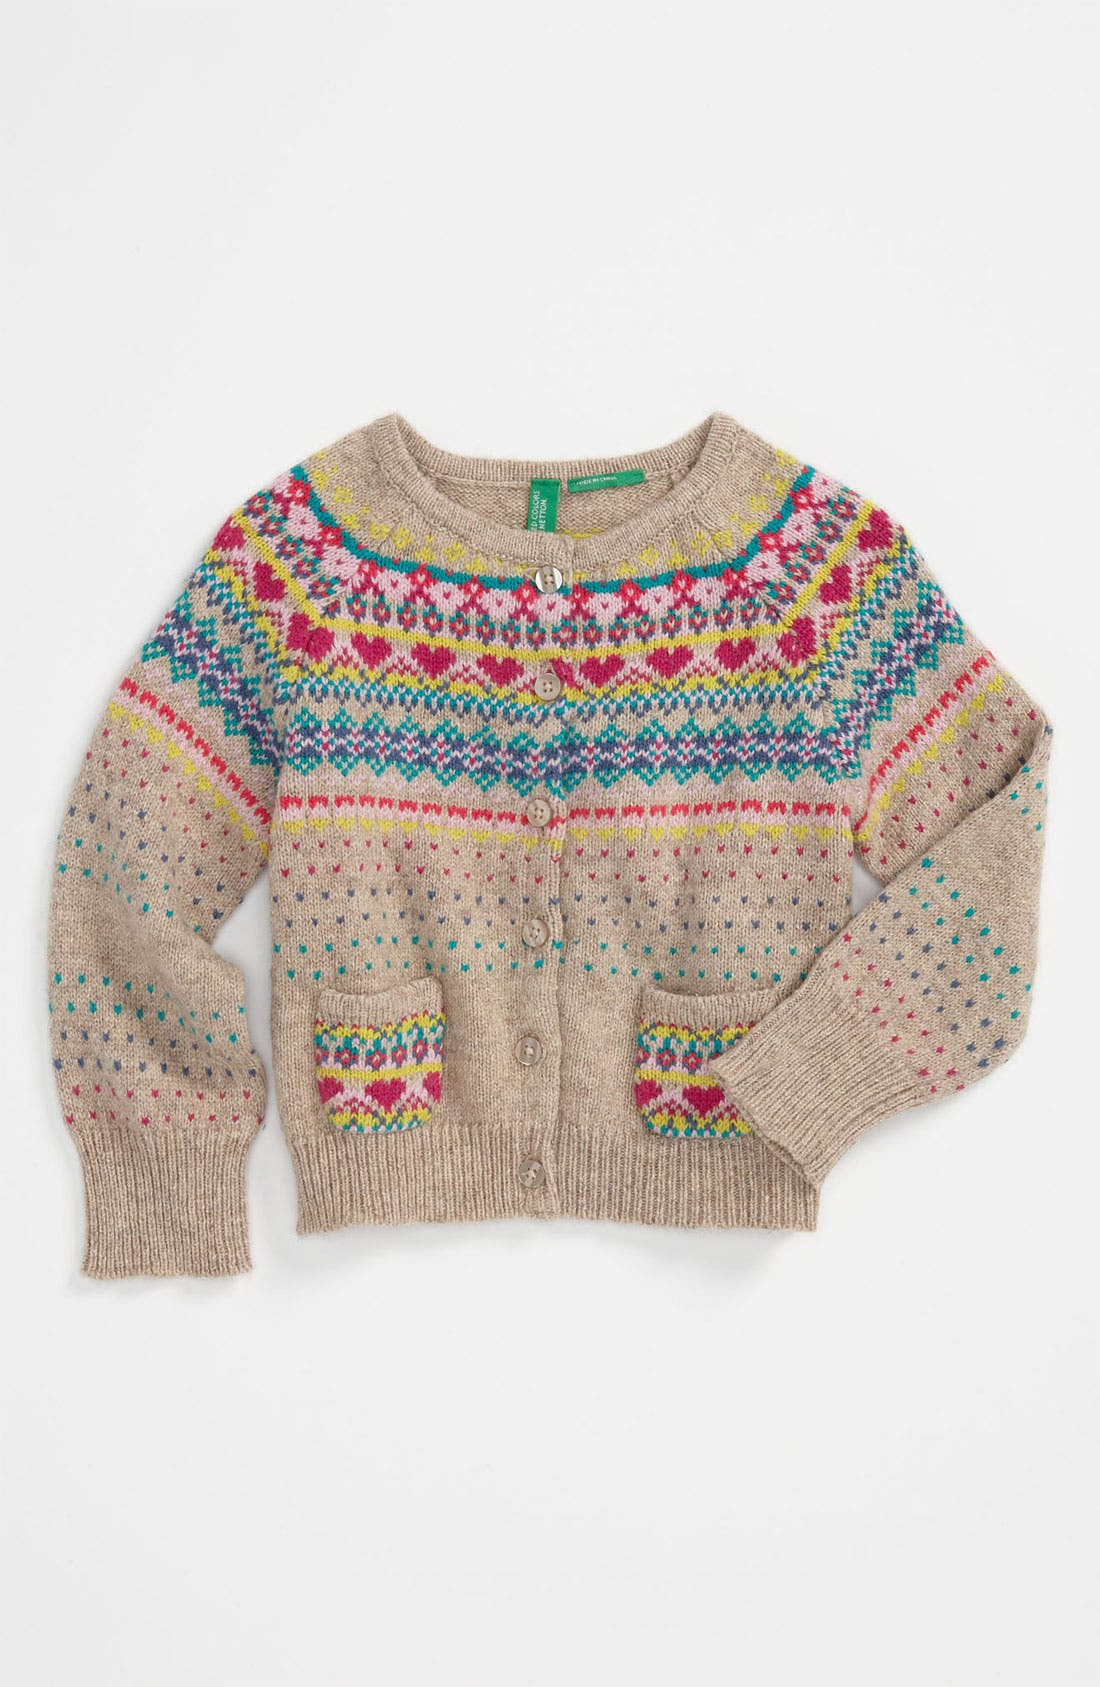 Alternate Image 1 Selected - United Colors of Benetton Kids Knit Sweater (Infant)